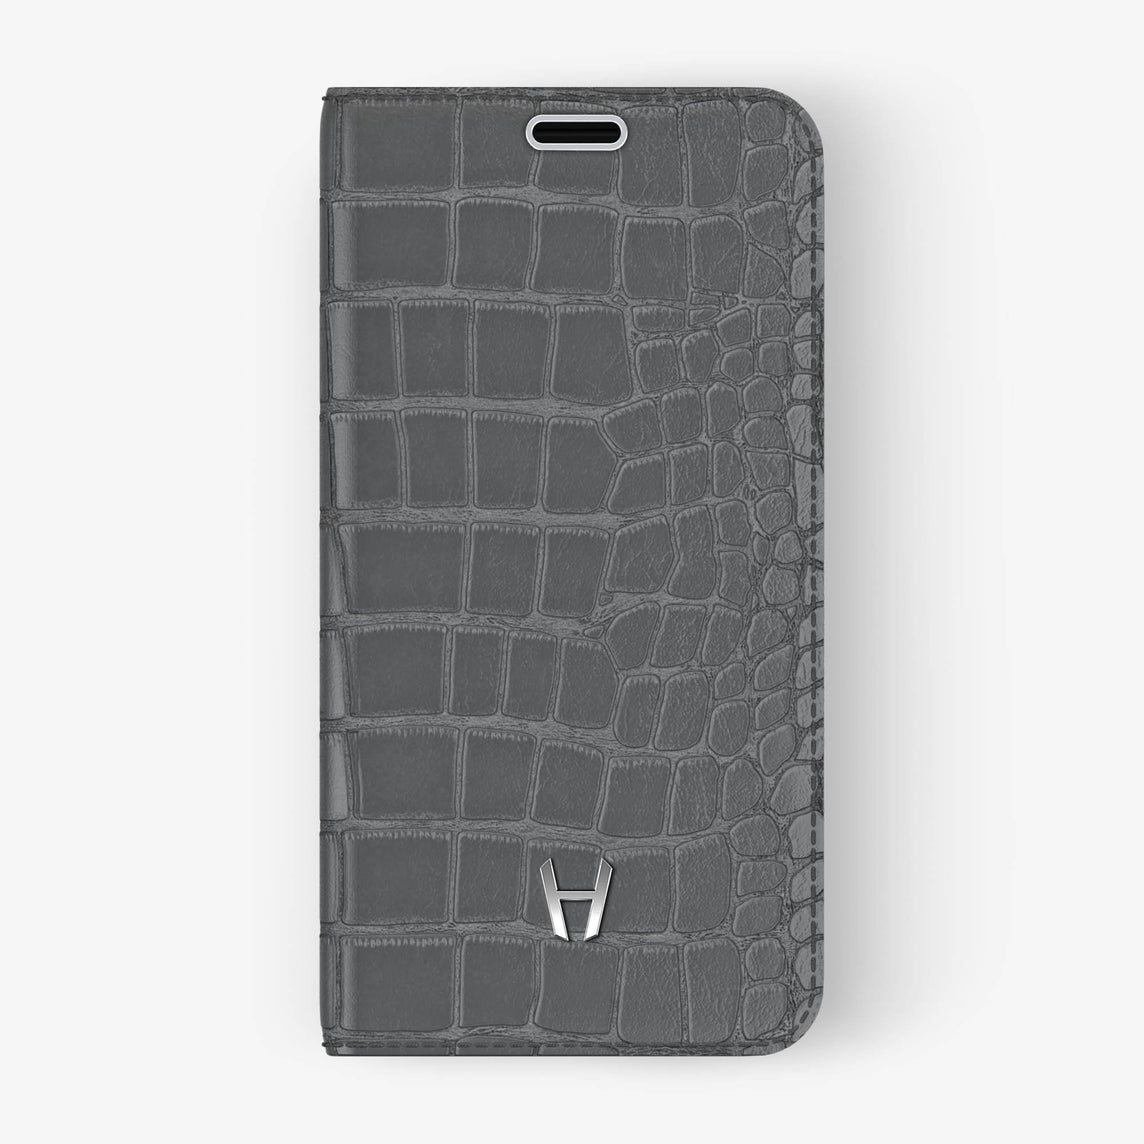 Grey Alligator iPhone Folio Case for iPhone X finishing stainless steel - Hadoro Luxury Cases